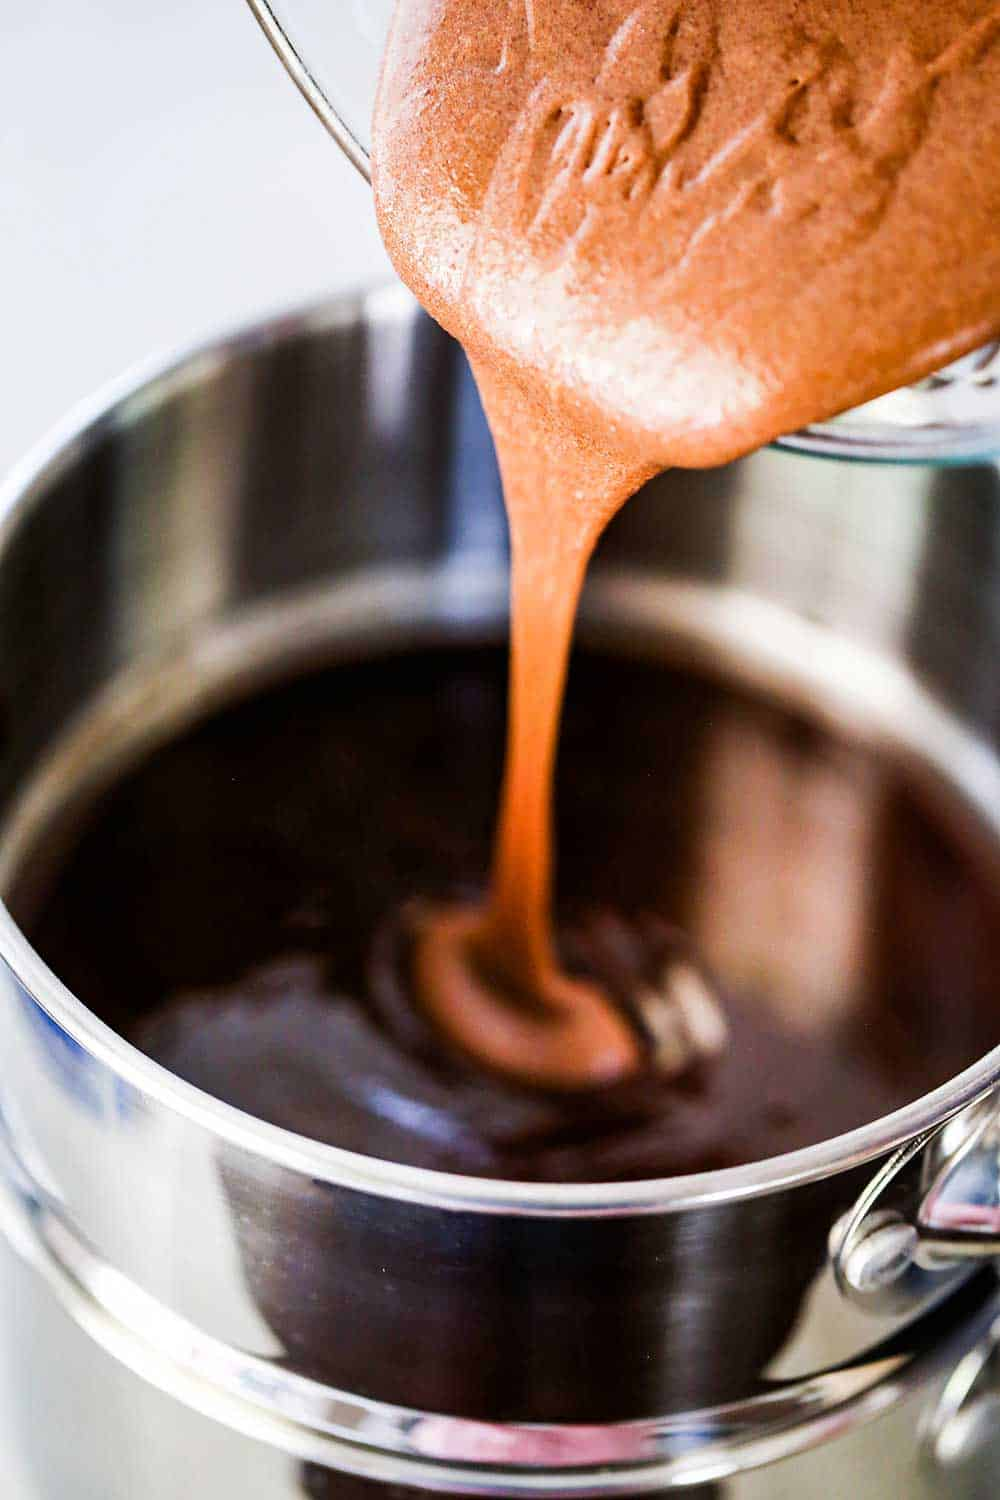 A creamy chocolate mixture being transferred from a glass bowl into a double boiler filled with melted butter and chocolate.